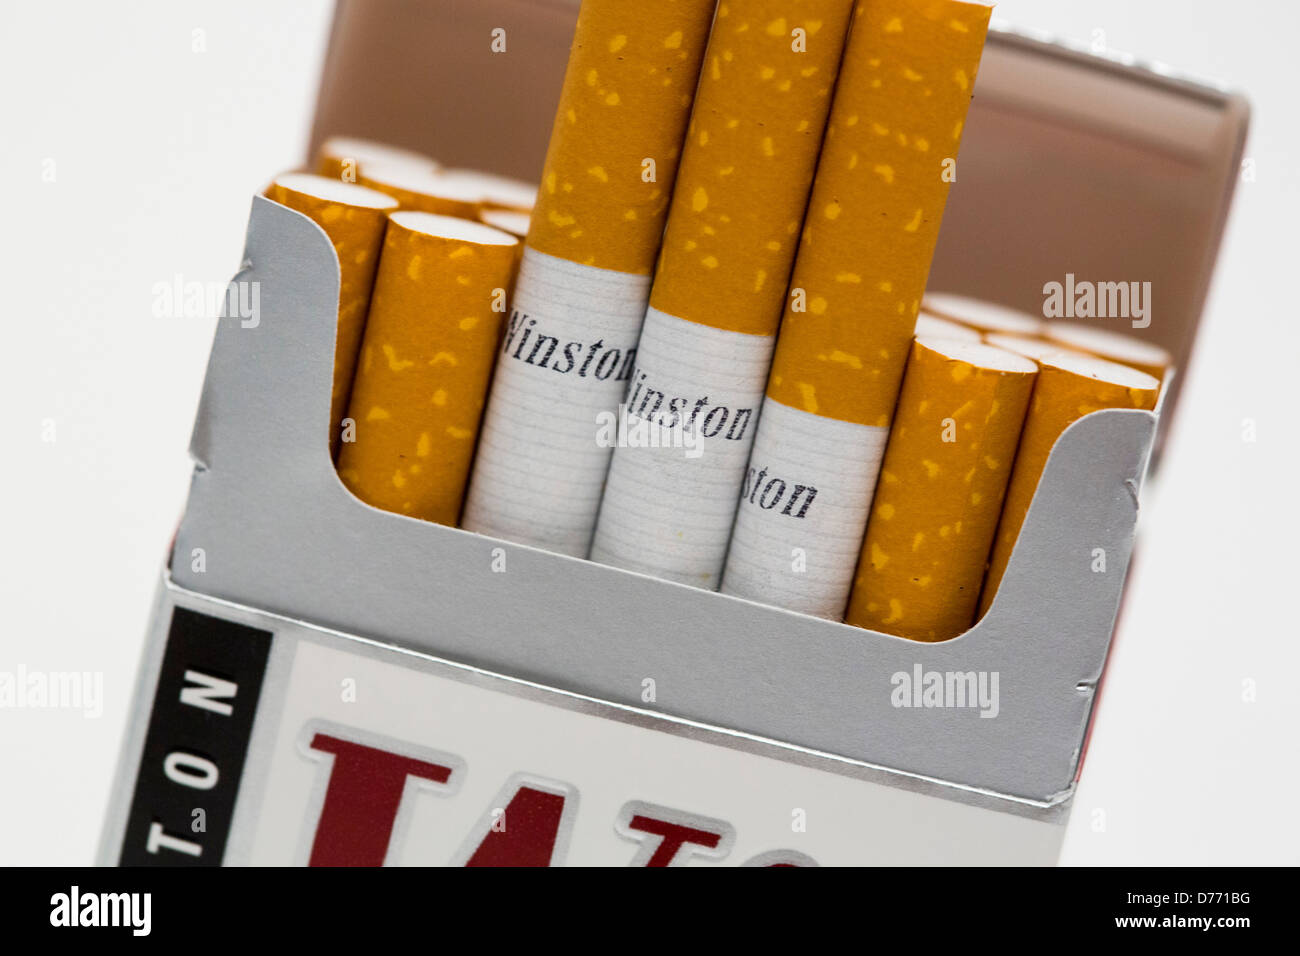 Pack Of Fags Stock Photos & Pack Of Fags Stock Images - Alamy